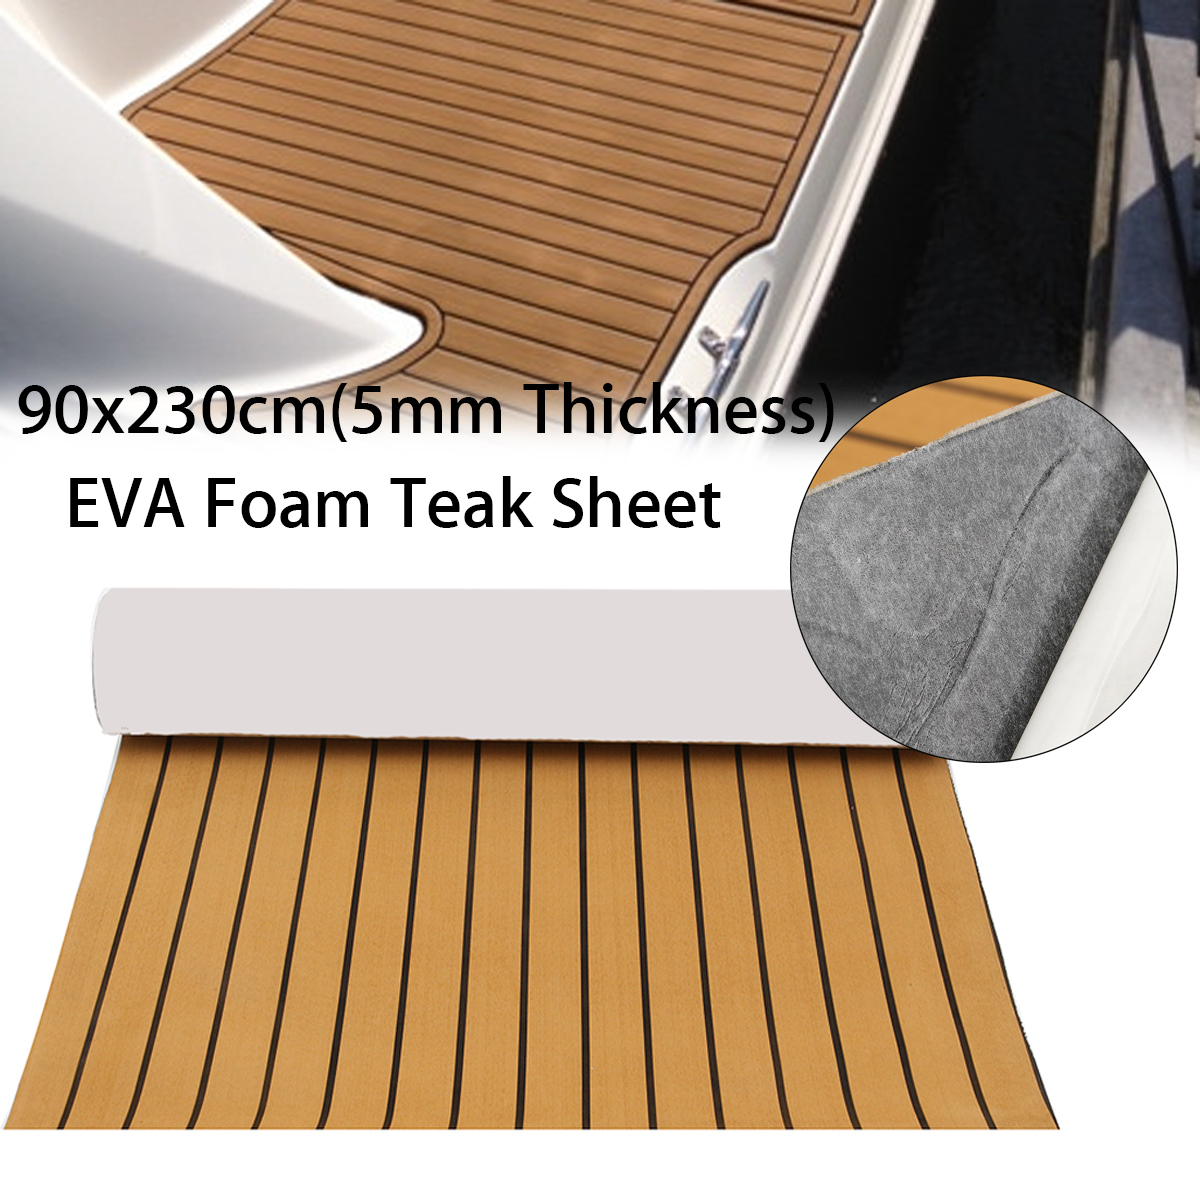 90x230cm 5mm Thickness Marine Boat Sheet Teak Decking Flooring Teak EVA Foam Yacht Self-Adhesive Mat